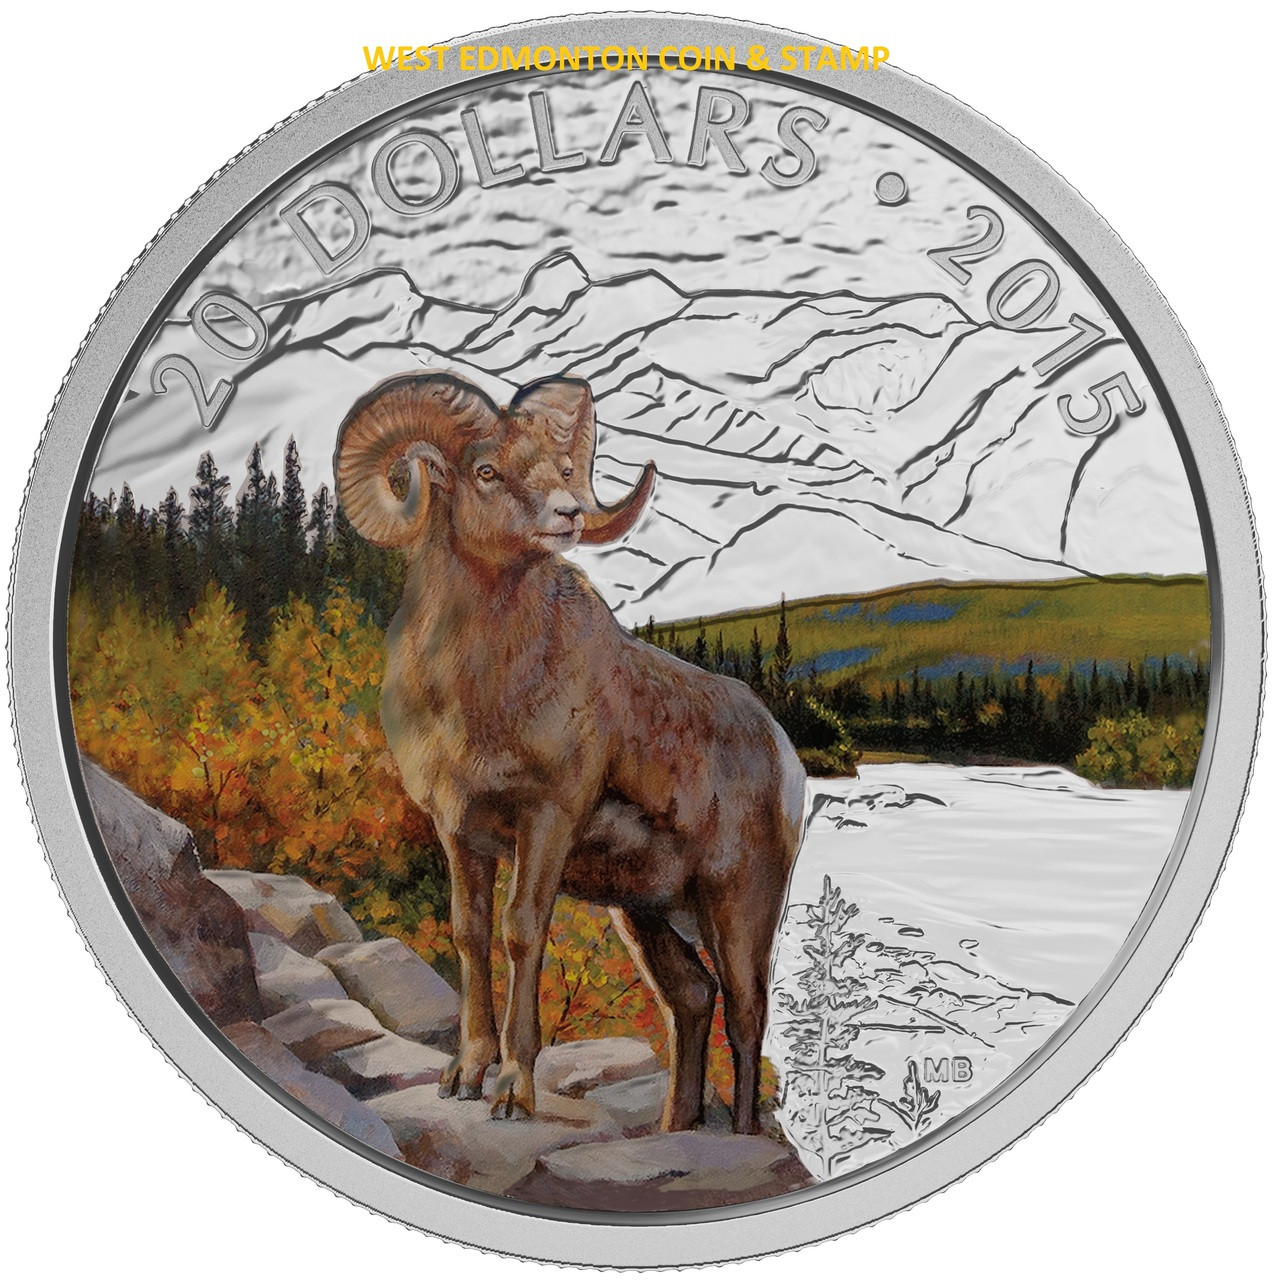 Canada 2015 $5 Year of the Sheep Silver Coin